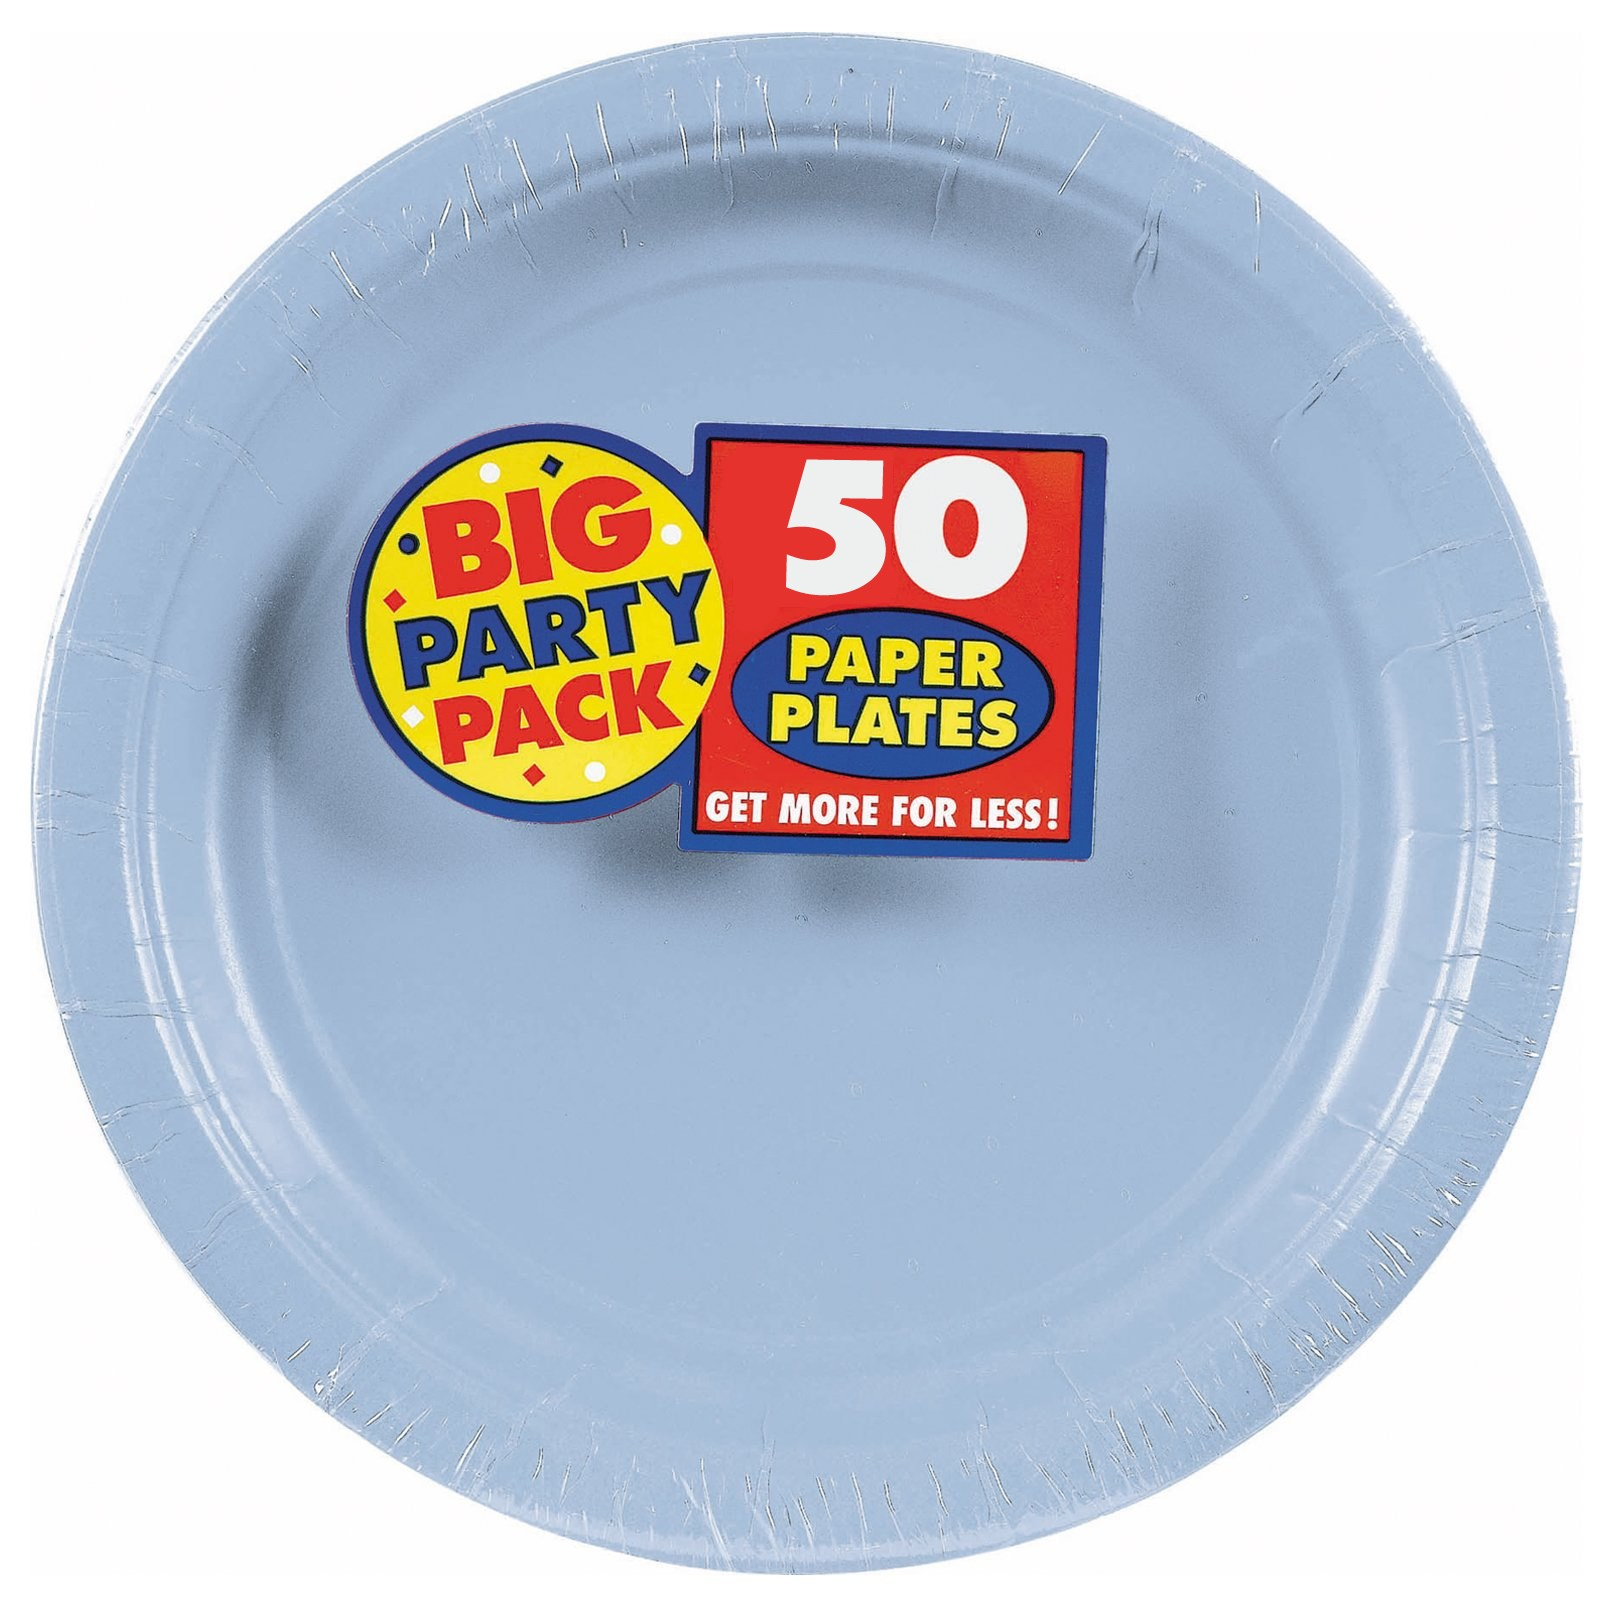 Pastel Blue Big Party Pack Dinner Plates kids birthday partyware